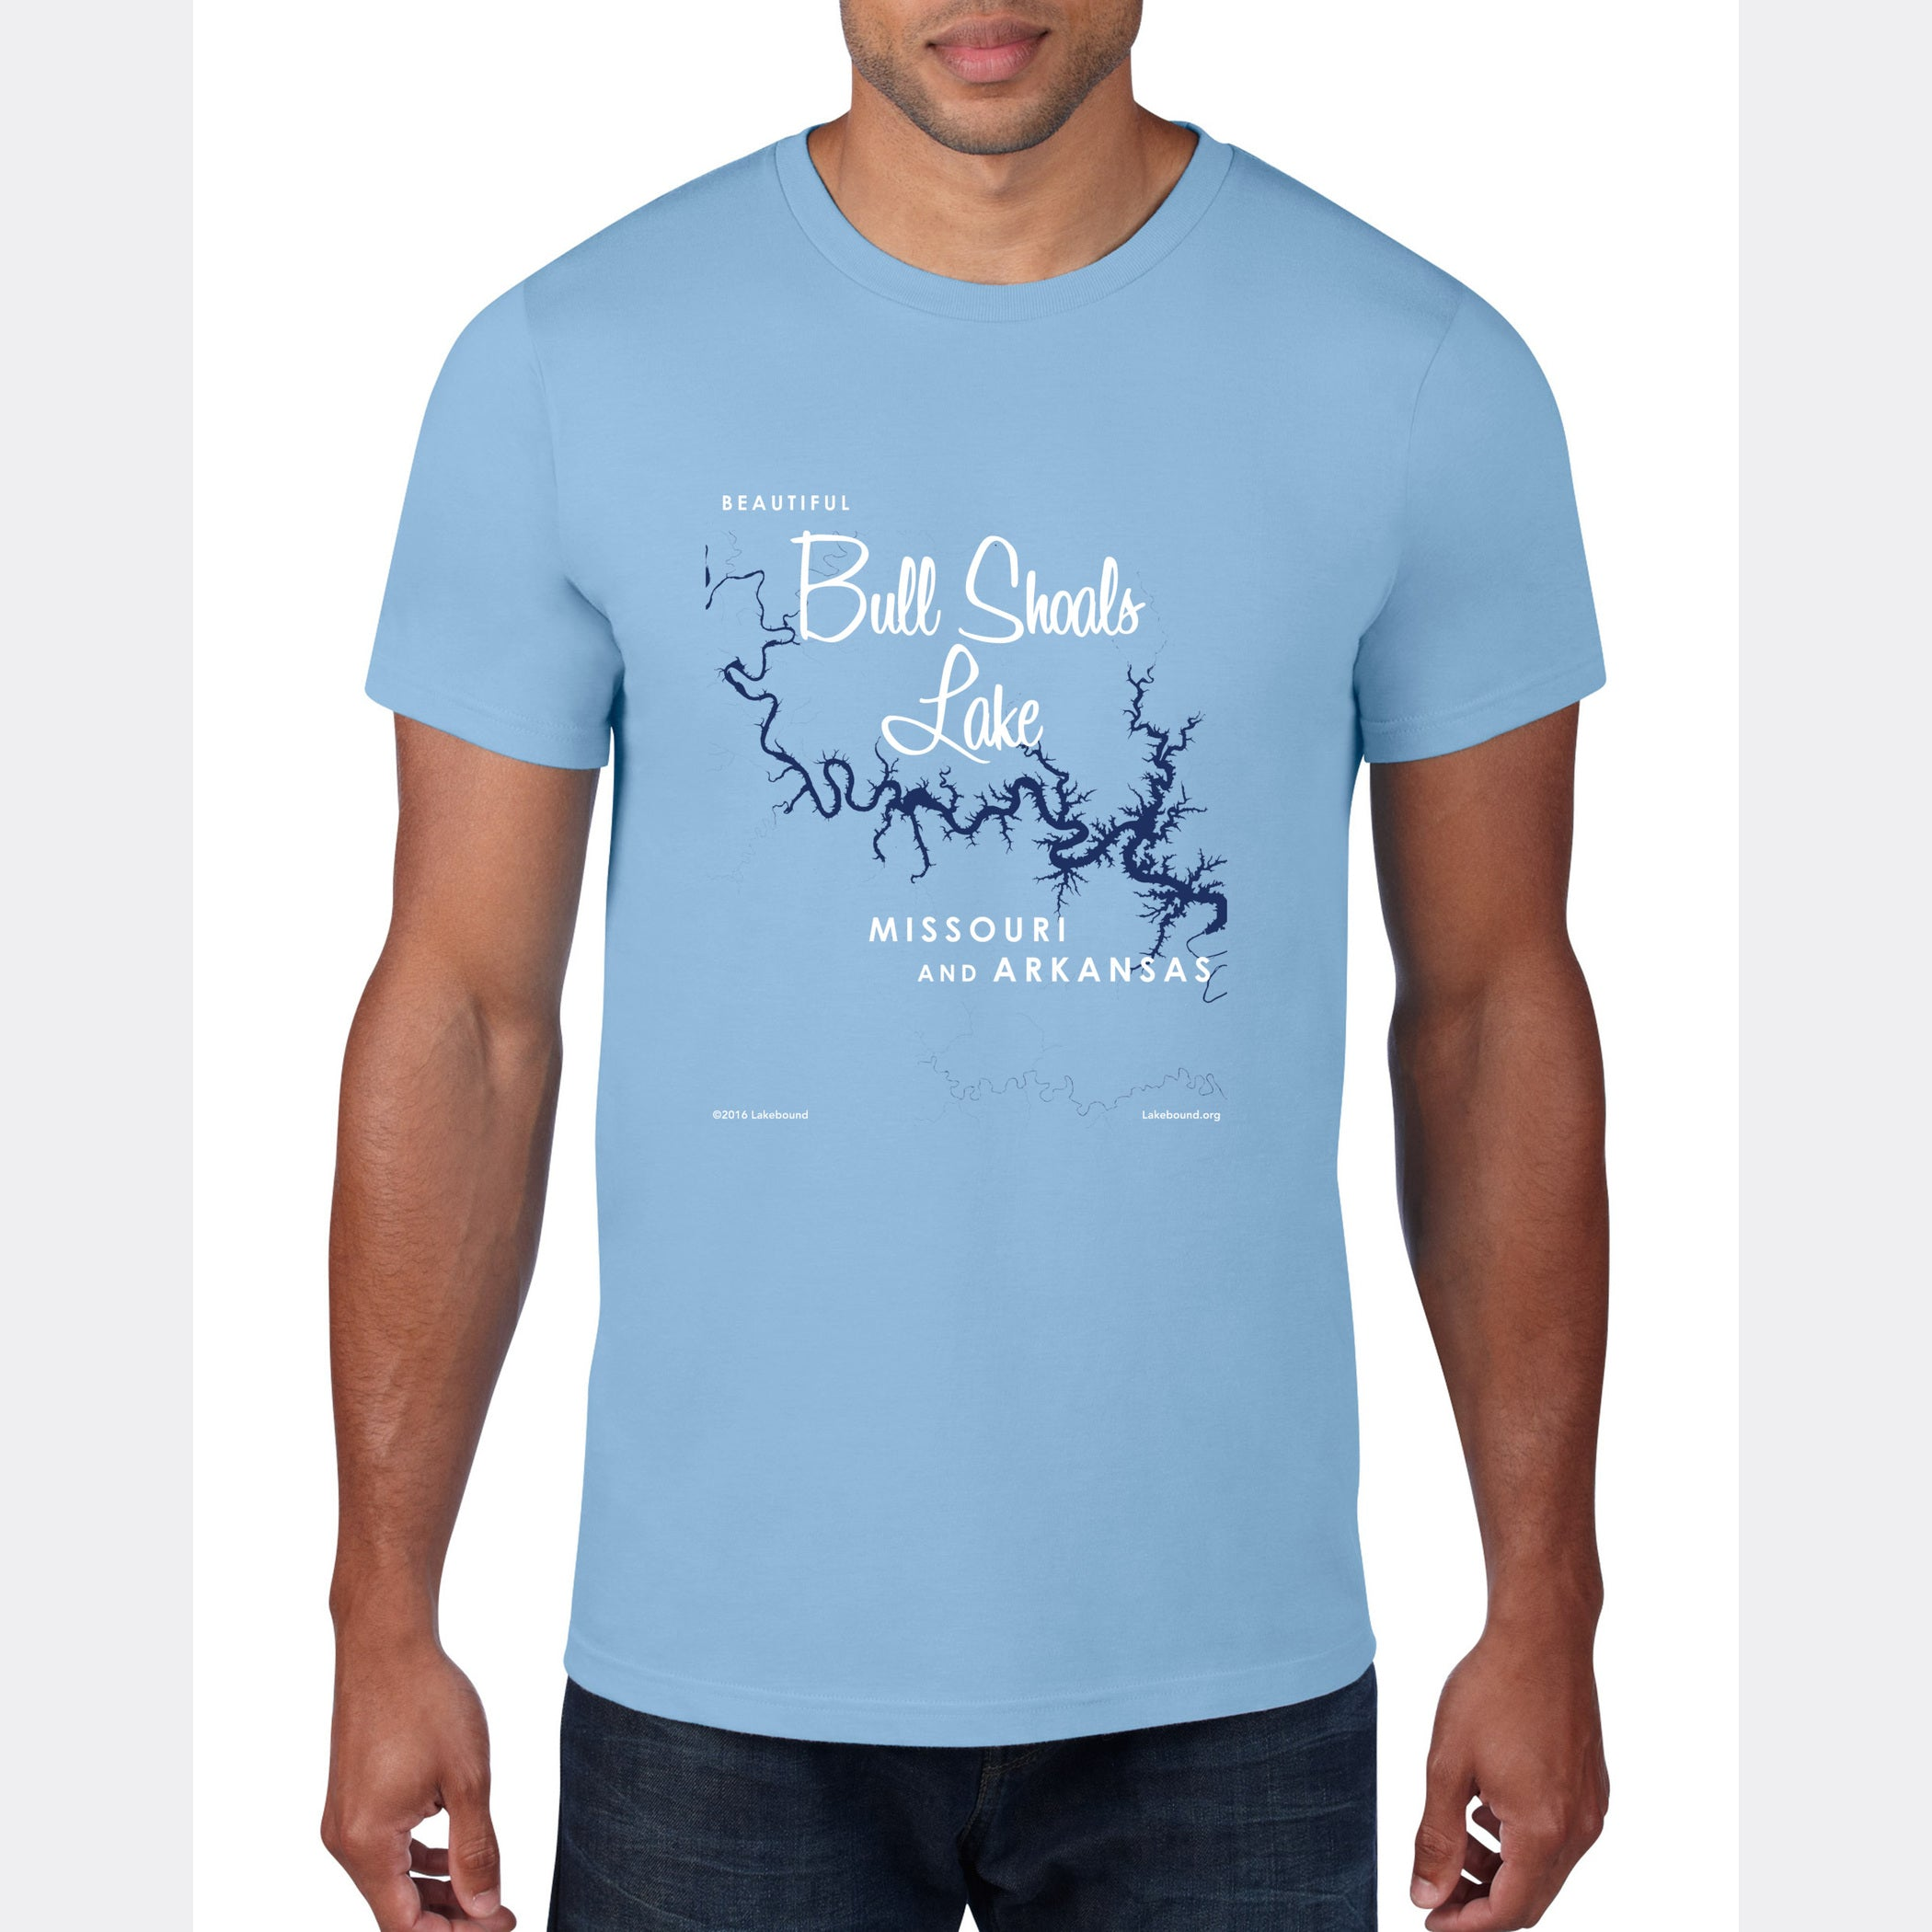 Bull Shoals Lake Missouri Arkansas, T-Shirt